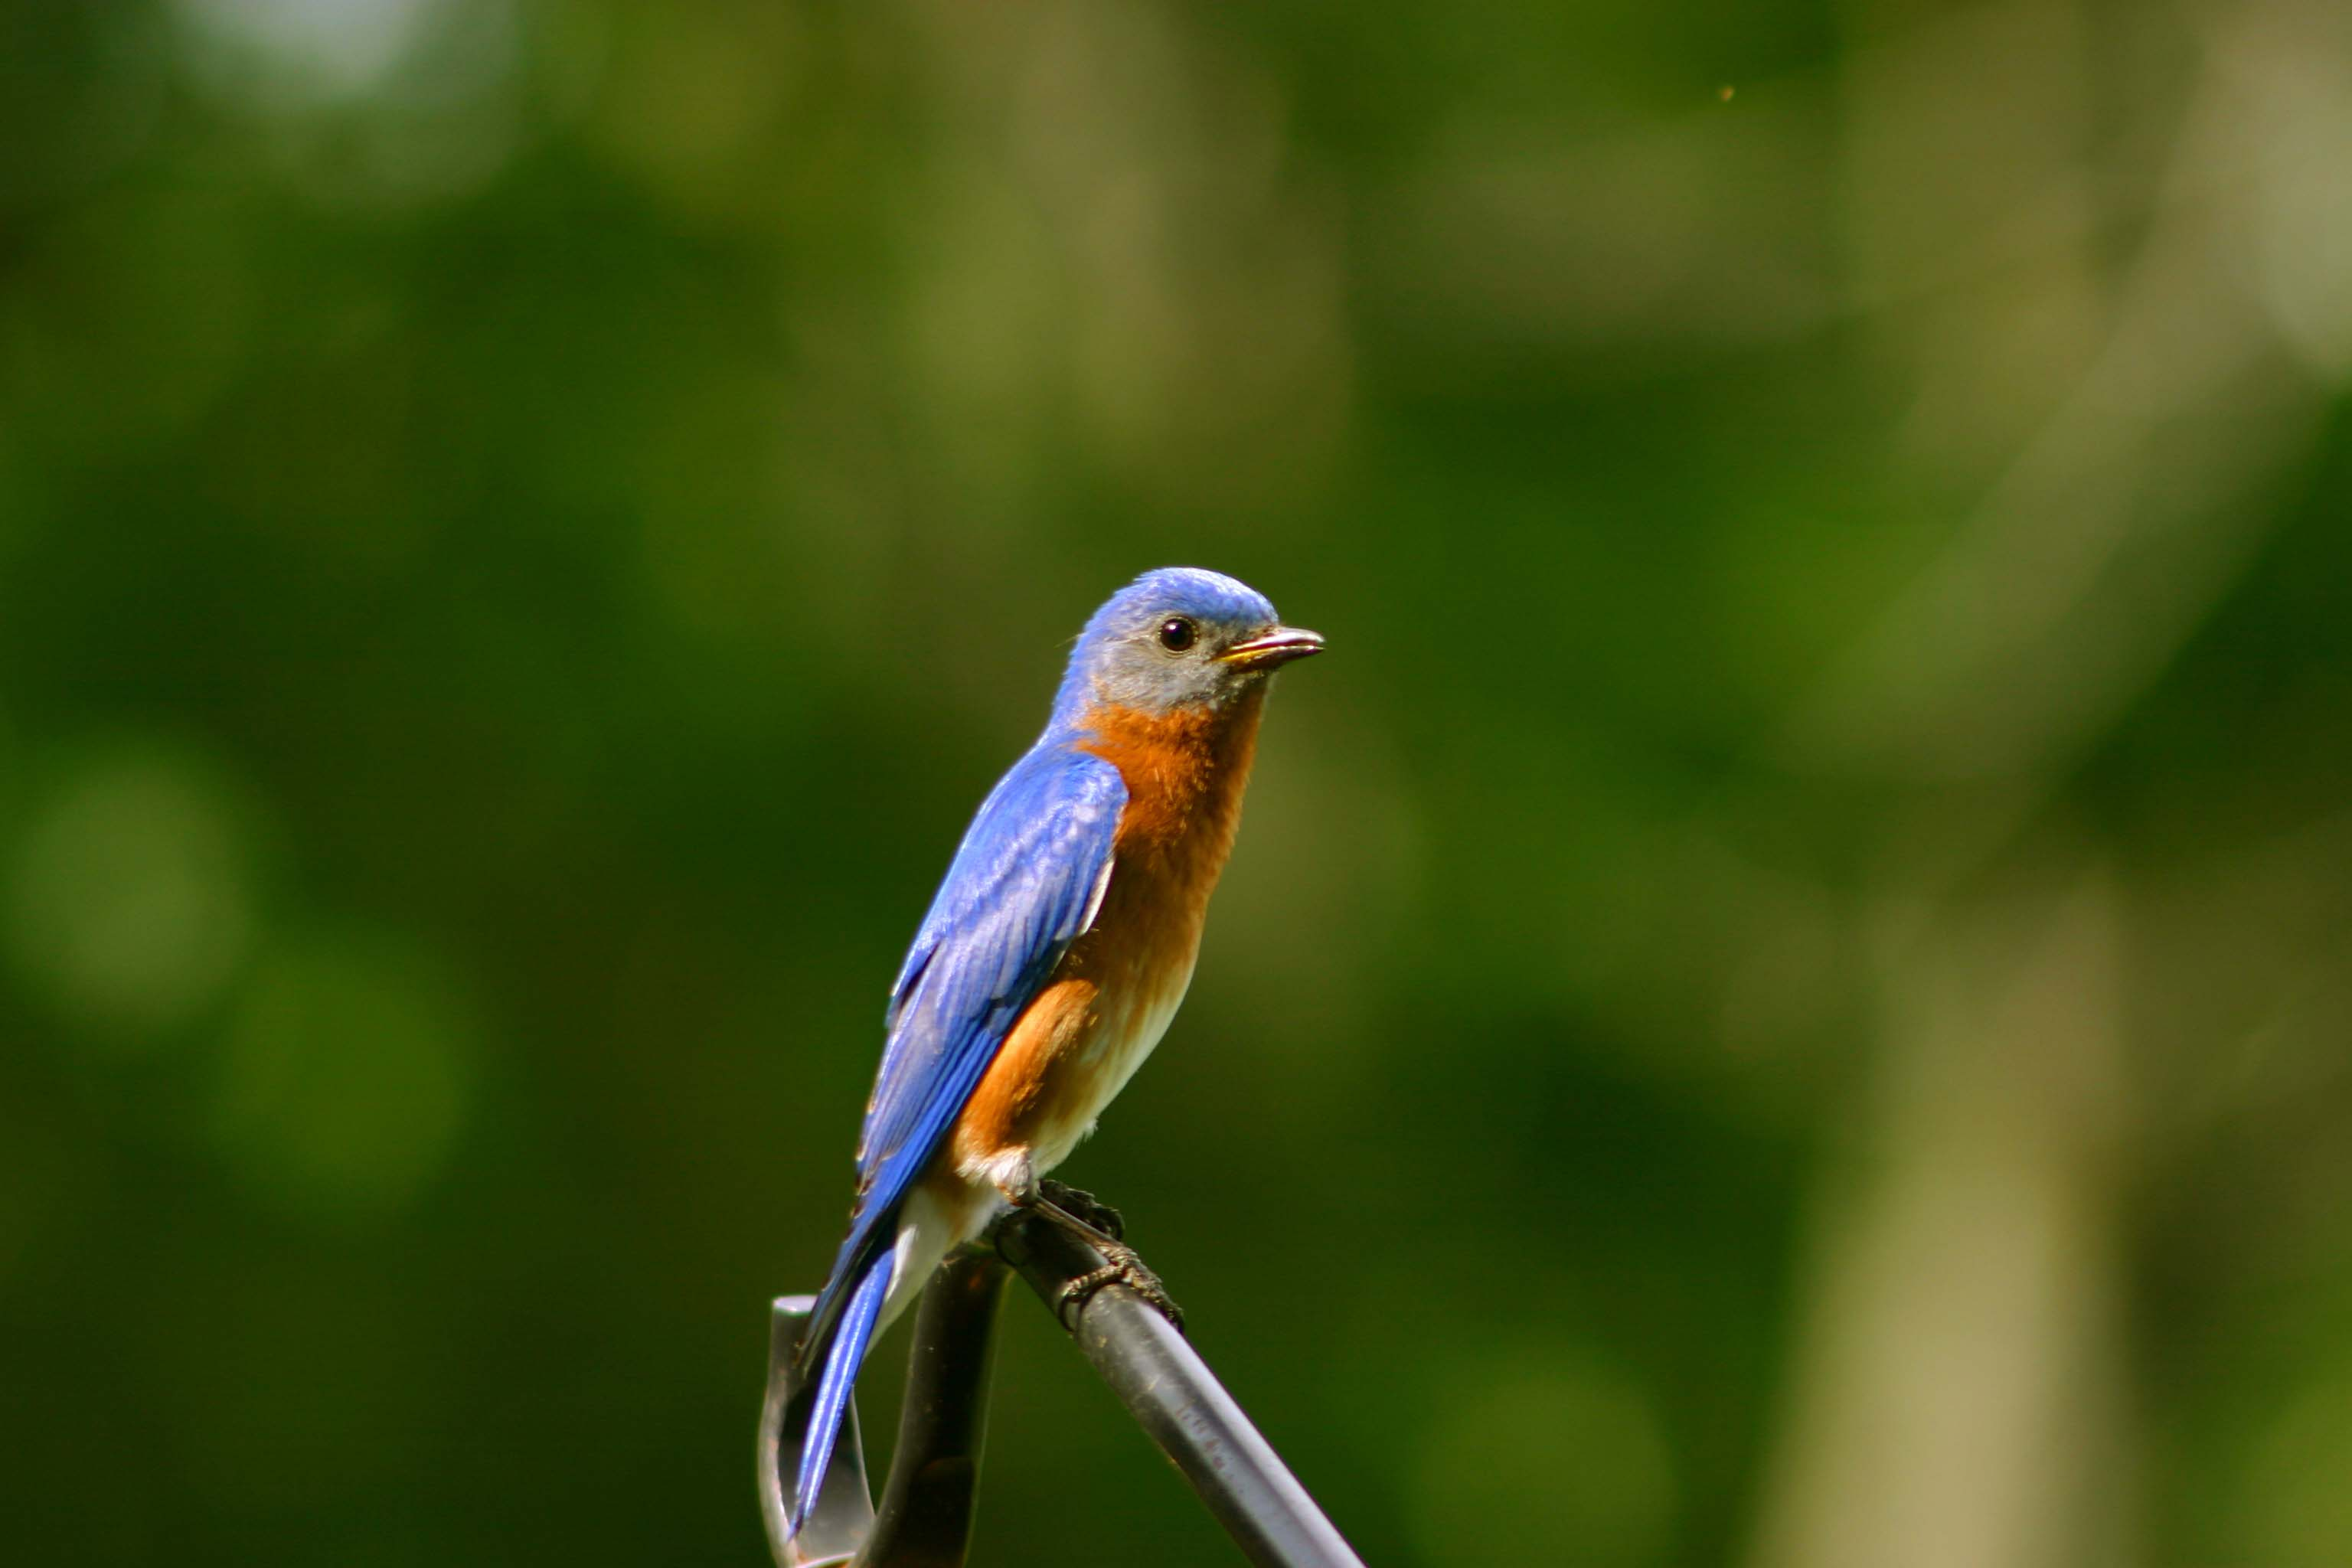 Male Bluebird 11MAY07.jpg